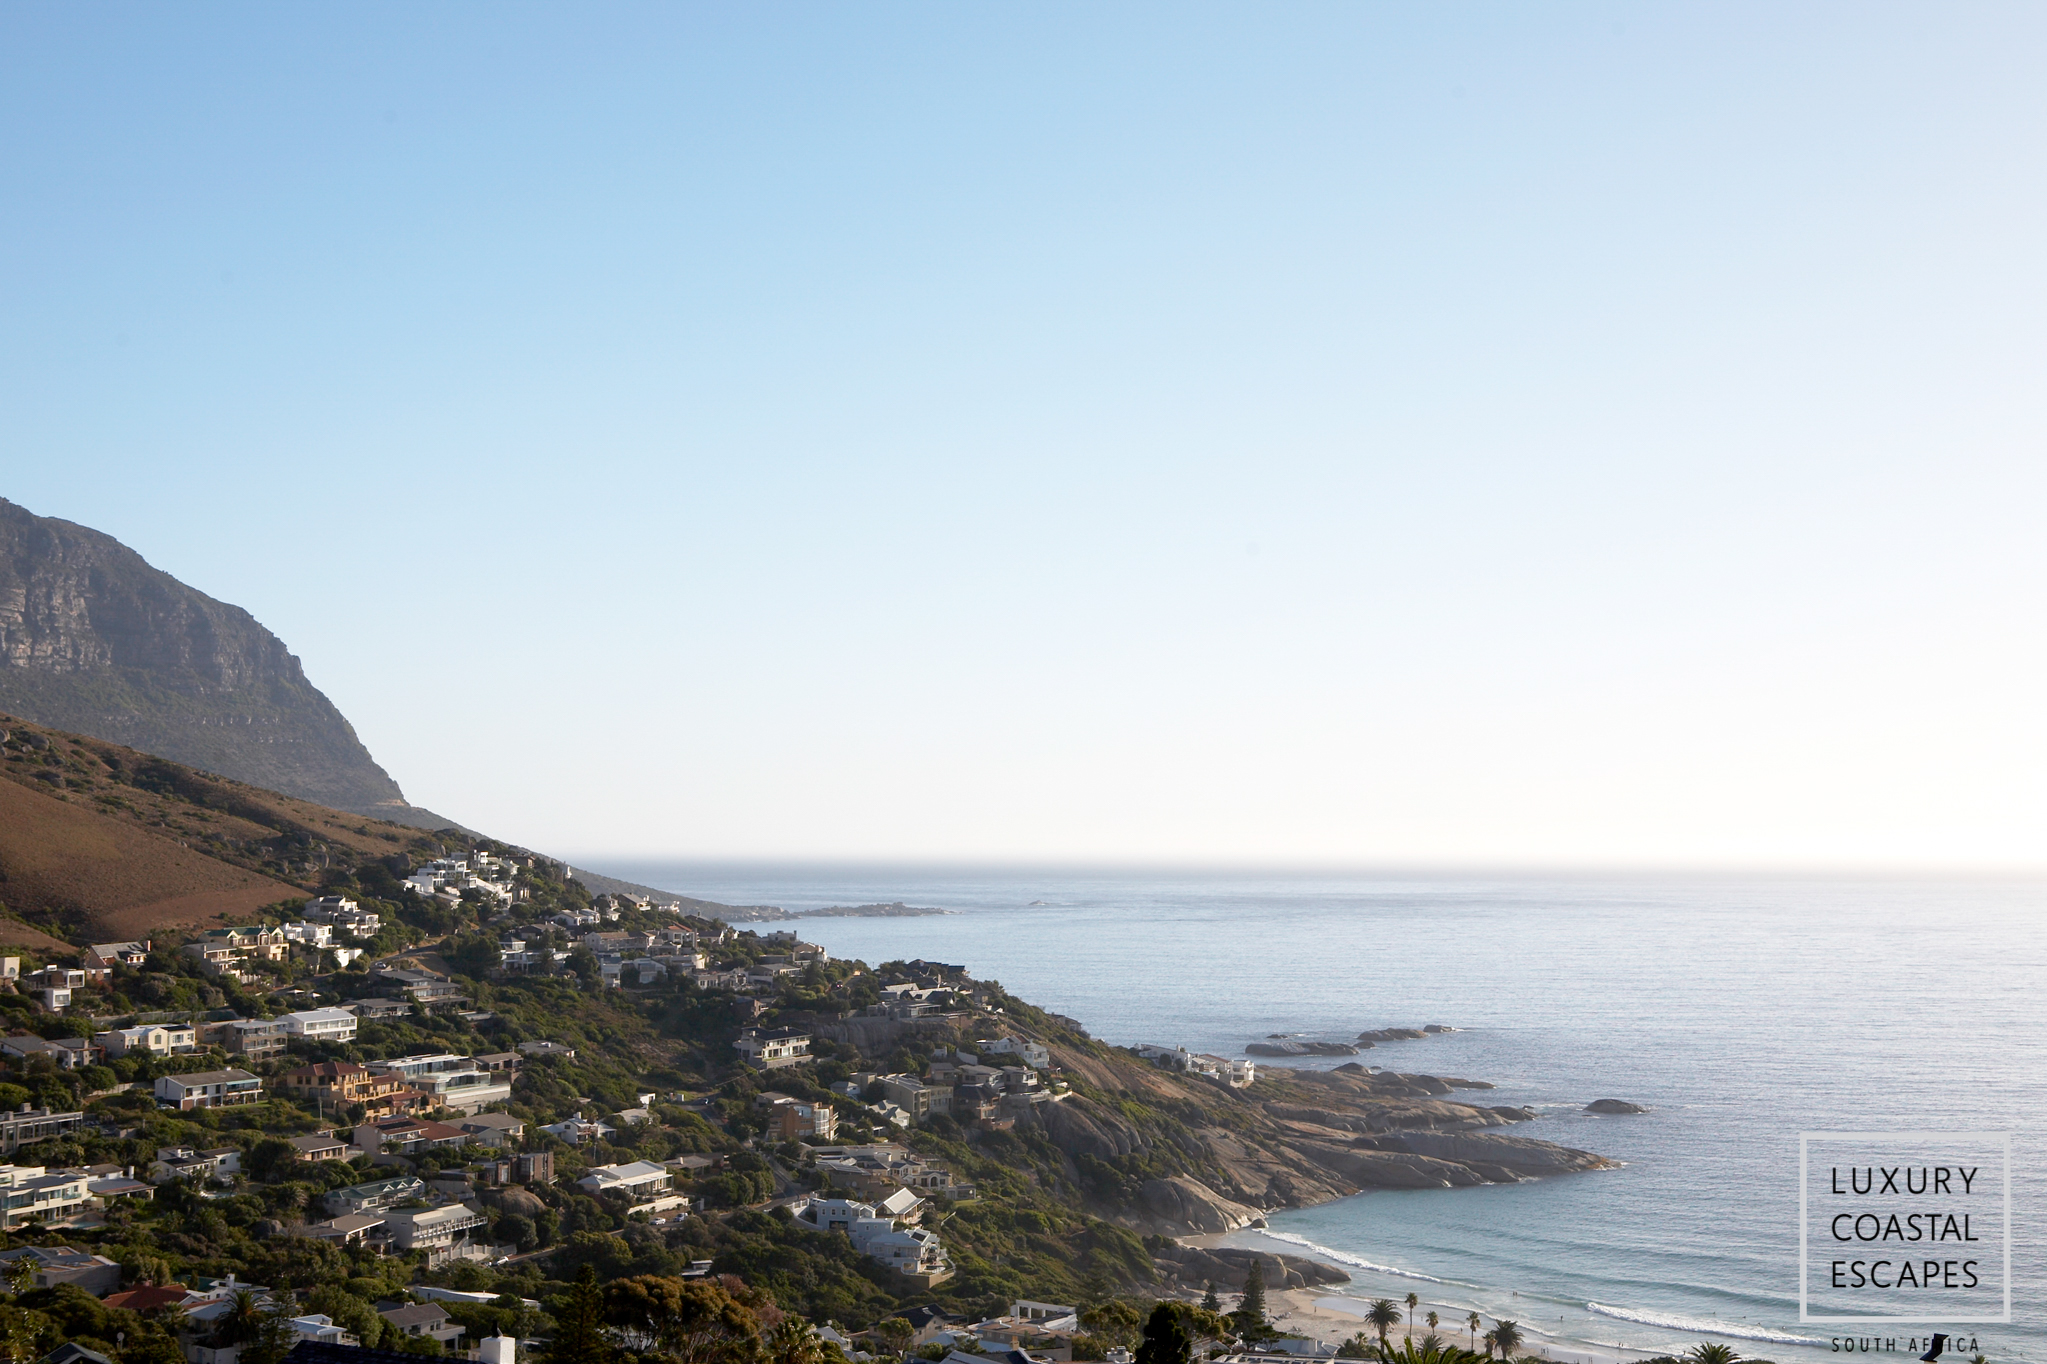 View of the town LLandudno - Cape Town